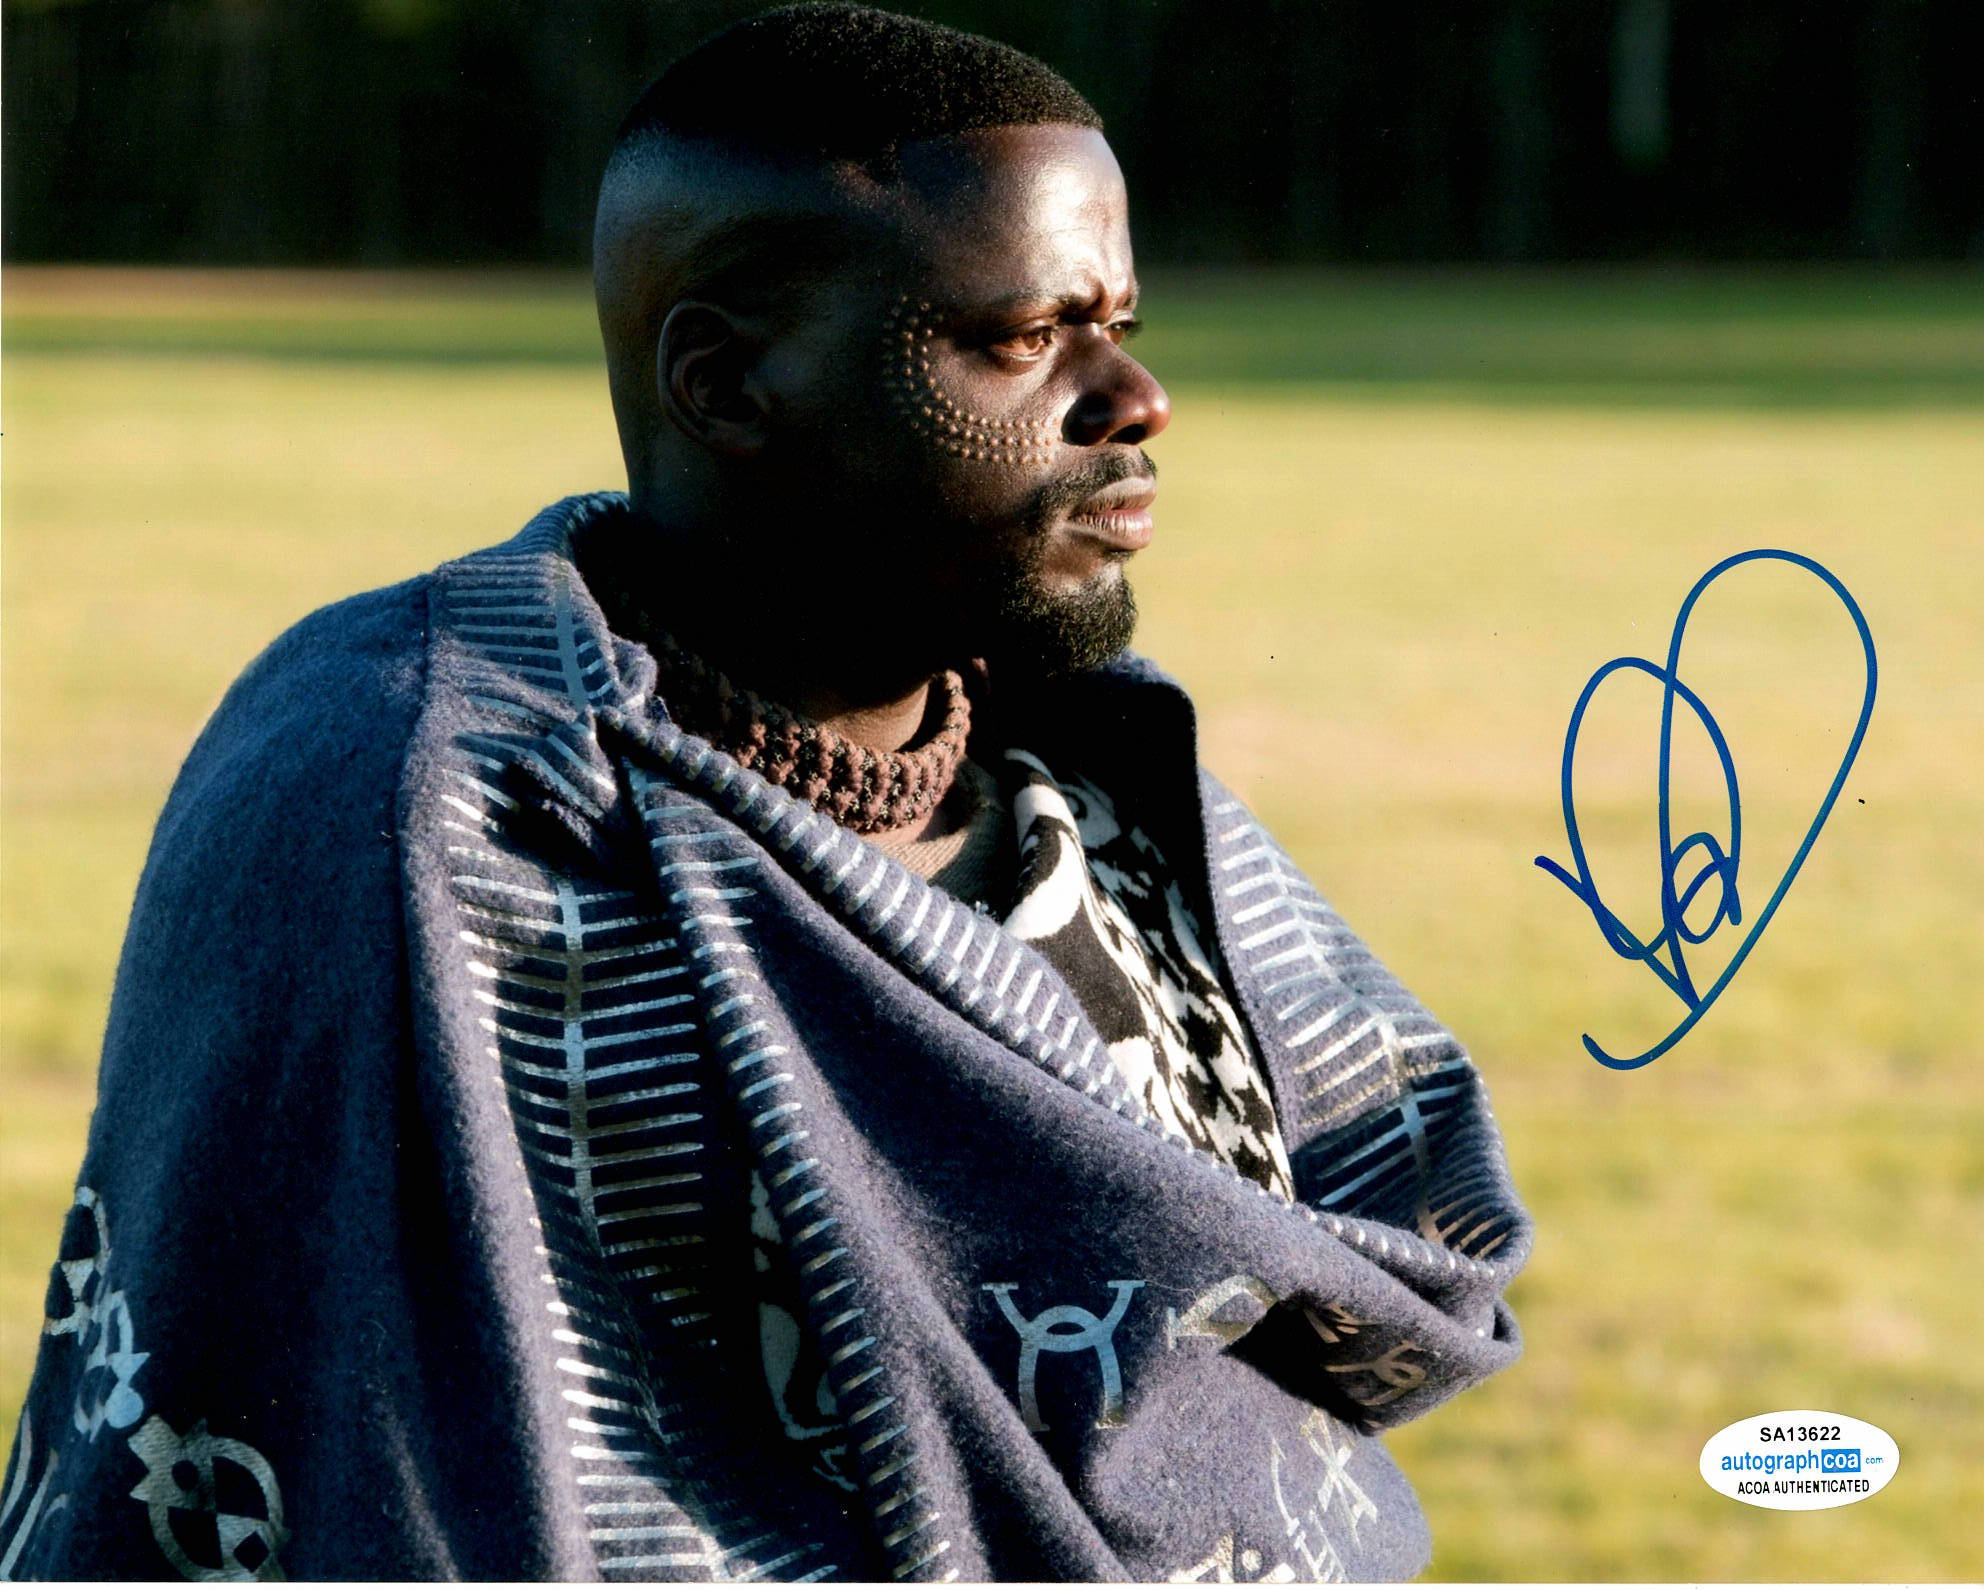 Daniel Kaluuya Black Panther Signed Autograph 8x10 Photo #2 - Outlaw Hobbies Authentic Autographs